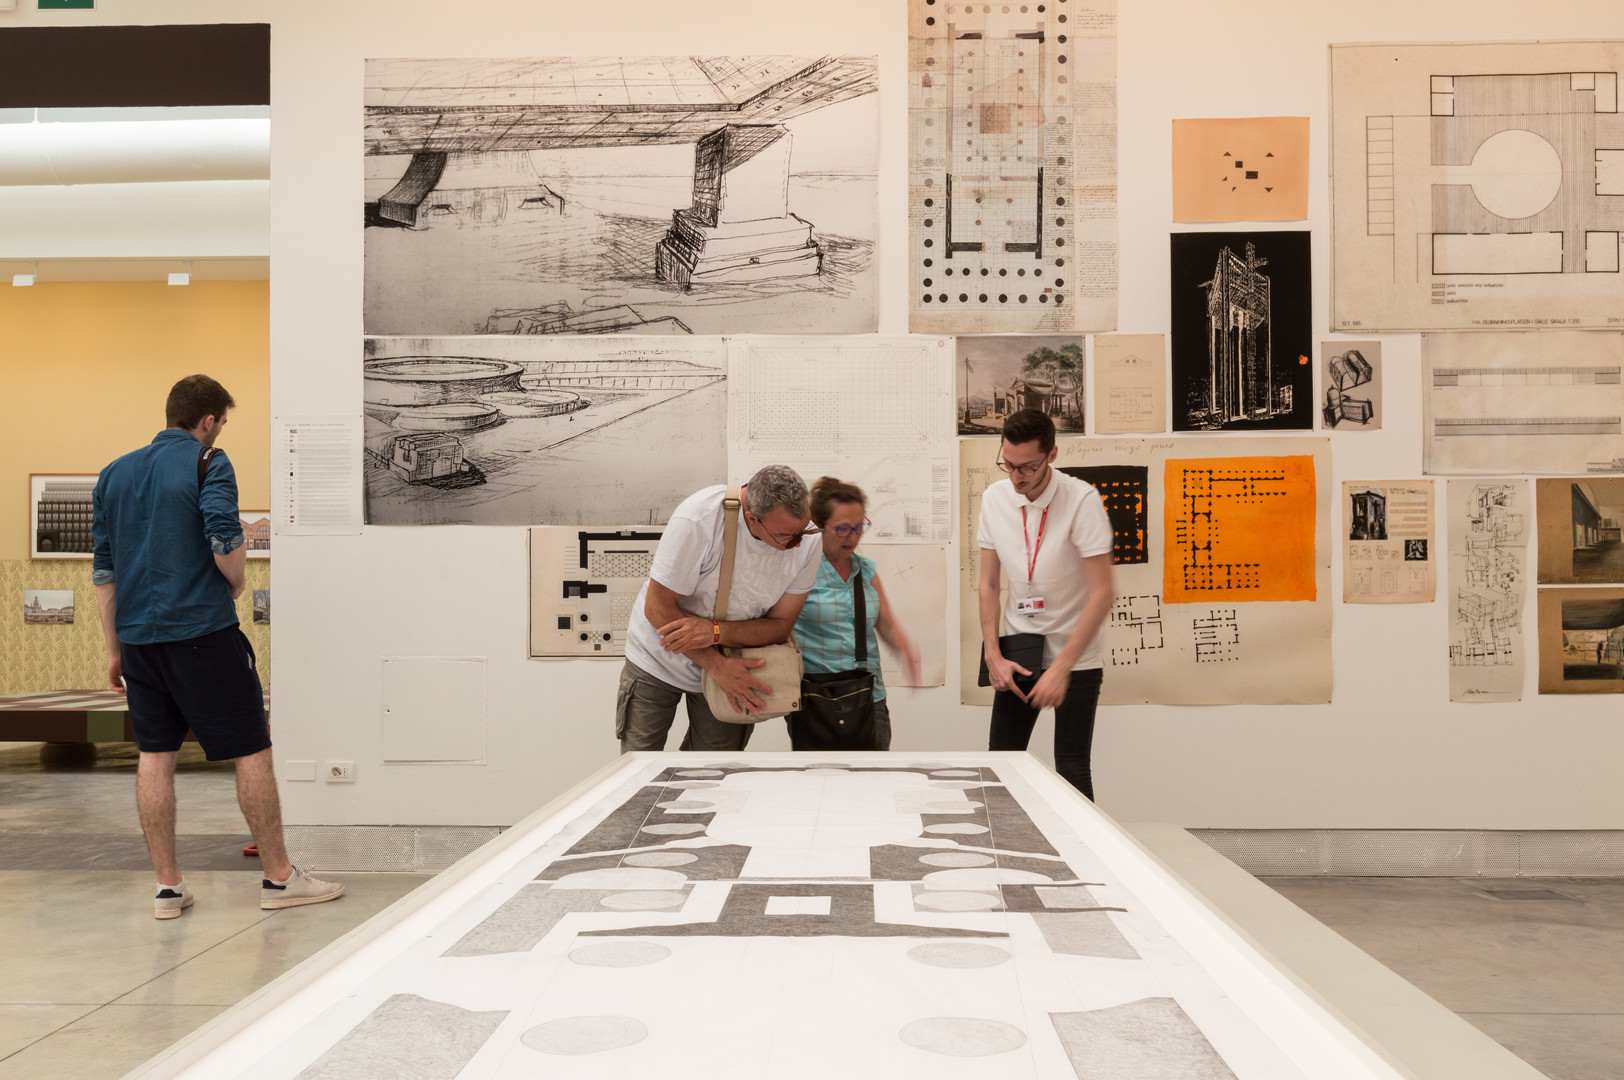 People looking at architectural drawings on a wall and table curated by Elizabeth Hatz Architects at the Venice Biennale 2018